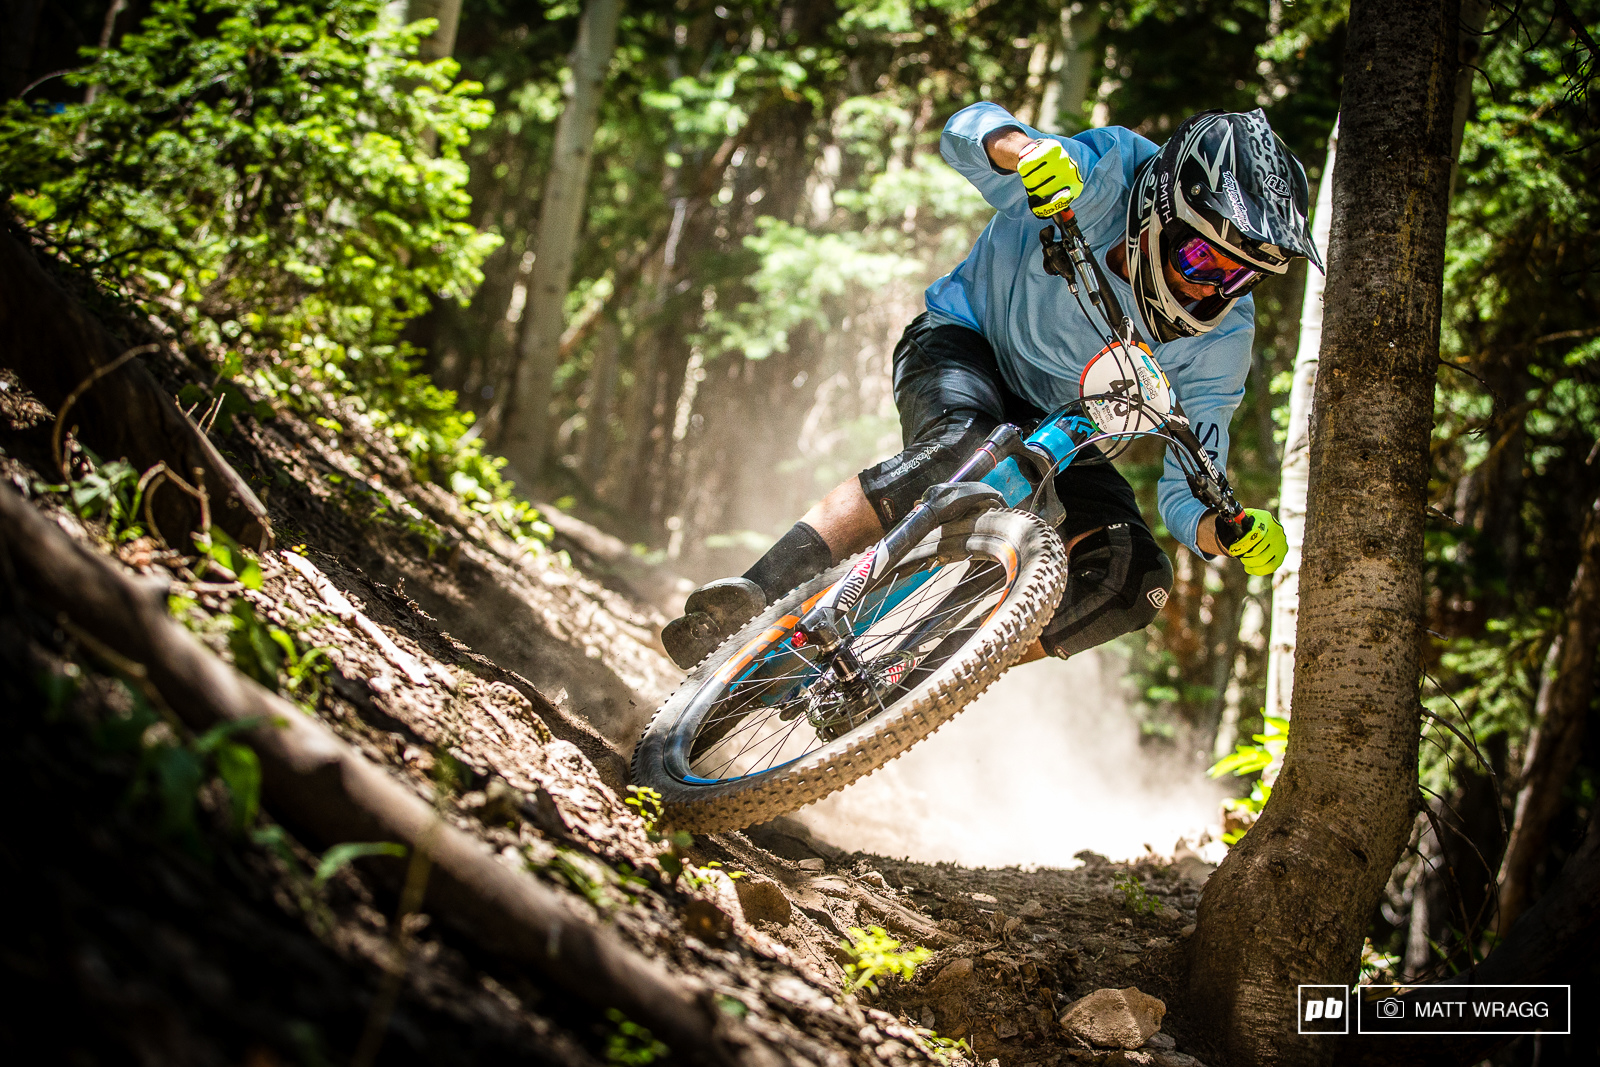 Alex Krunkshox McGuinness has been privateering to all of the rounds of the EWS this year.